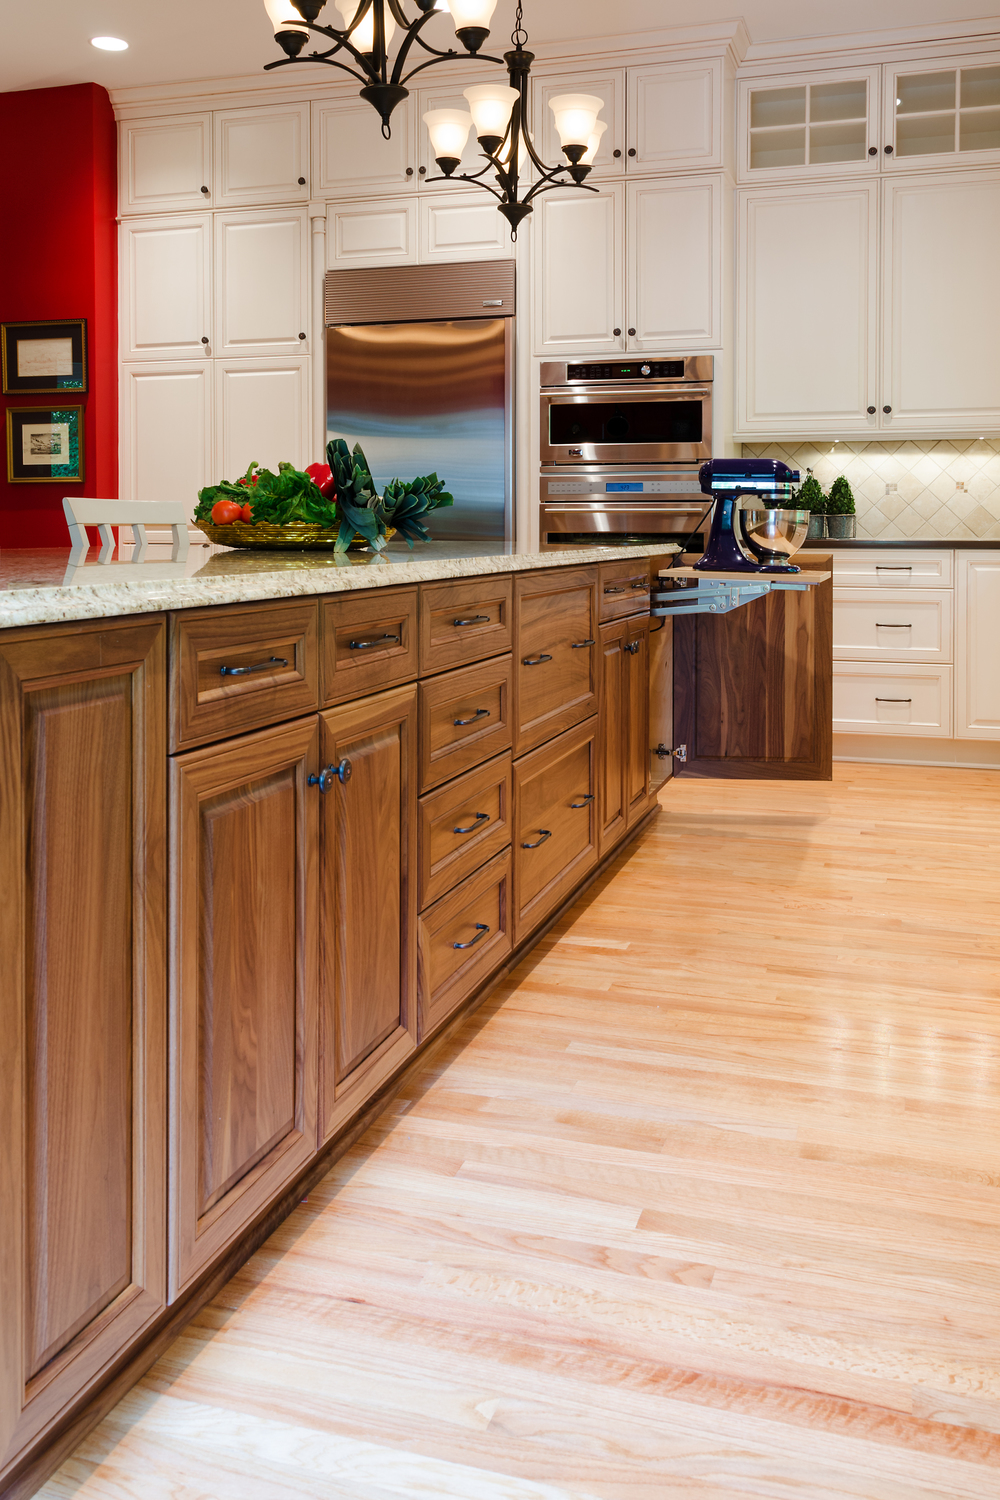 Custom-Kitchens-Gay-Kitchen-6-mixer-52214.jpg